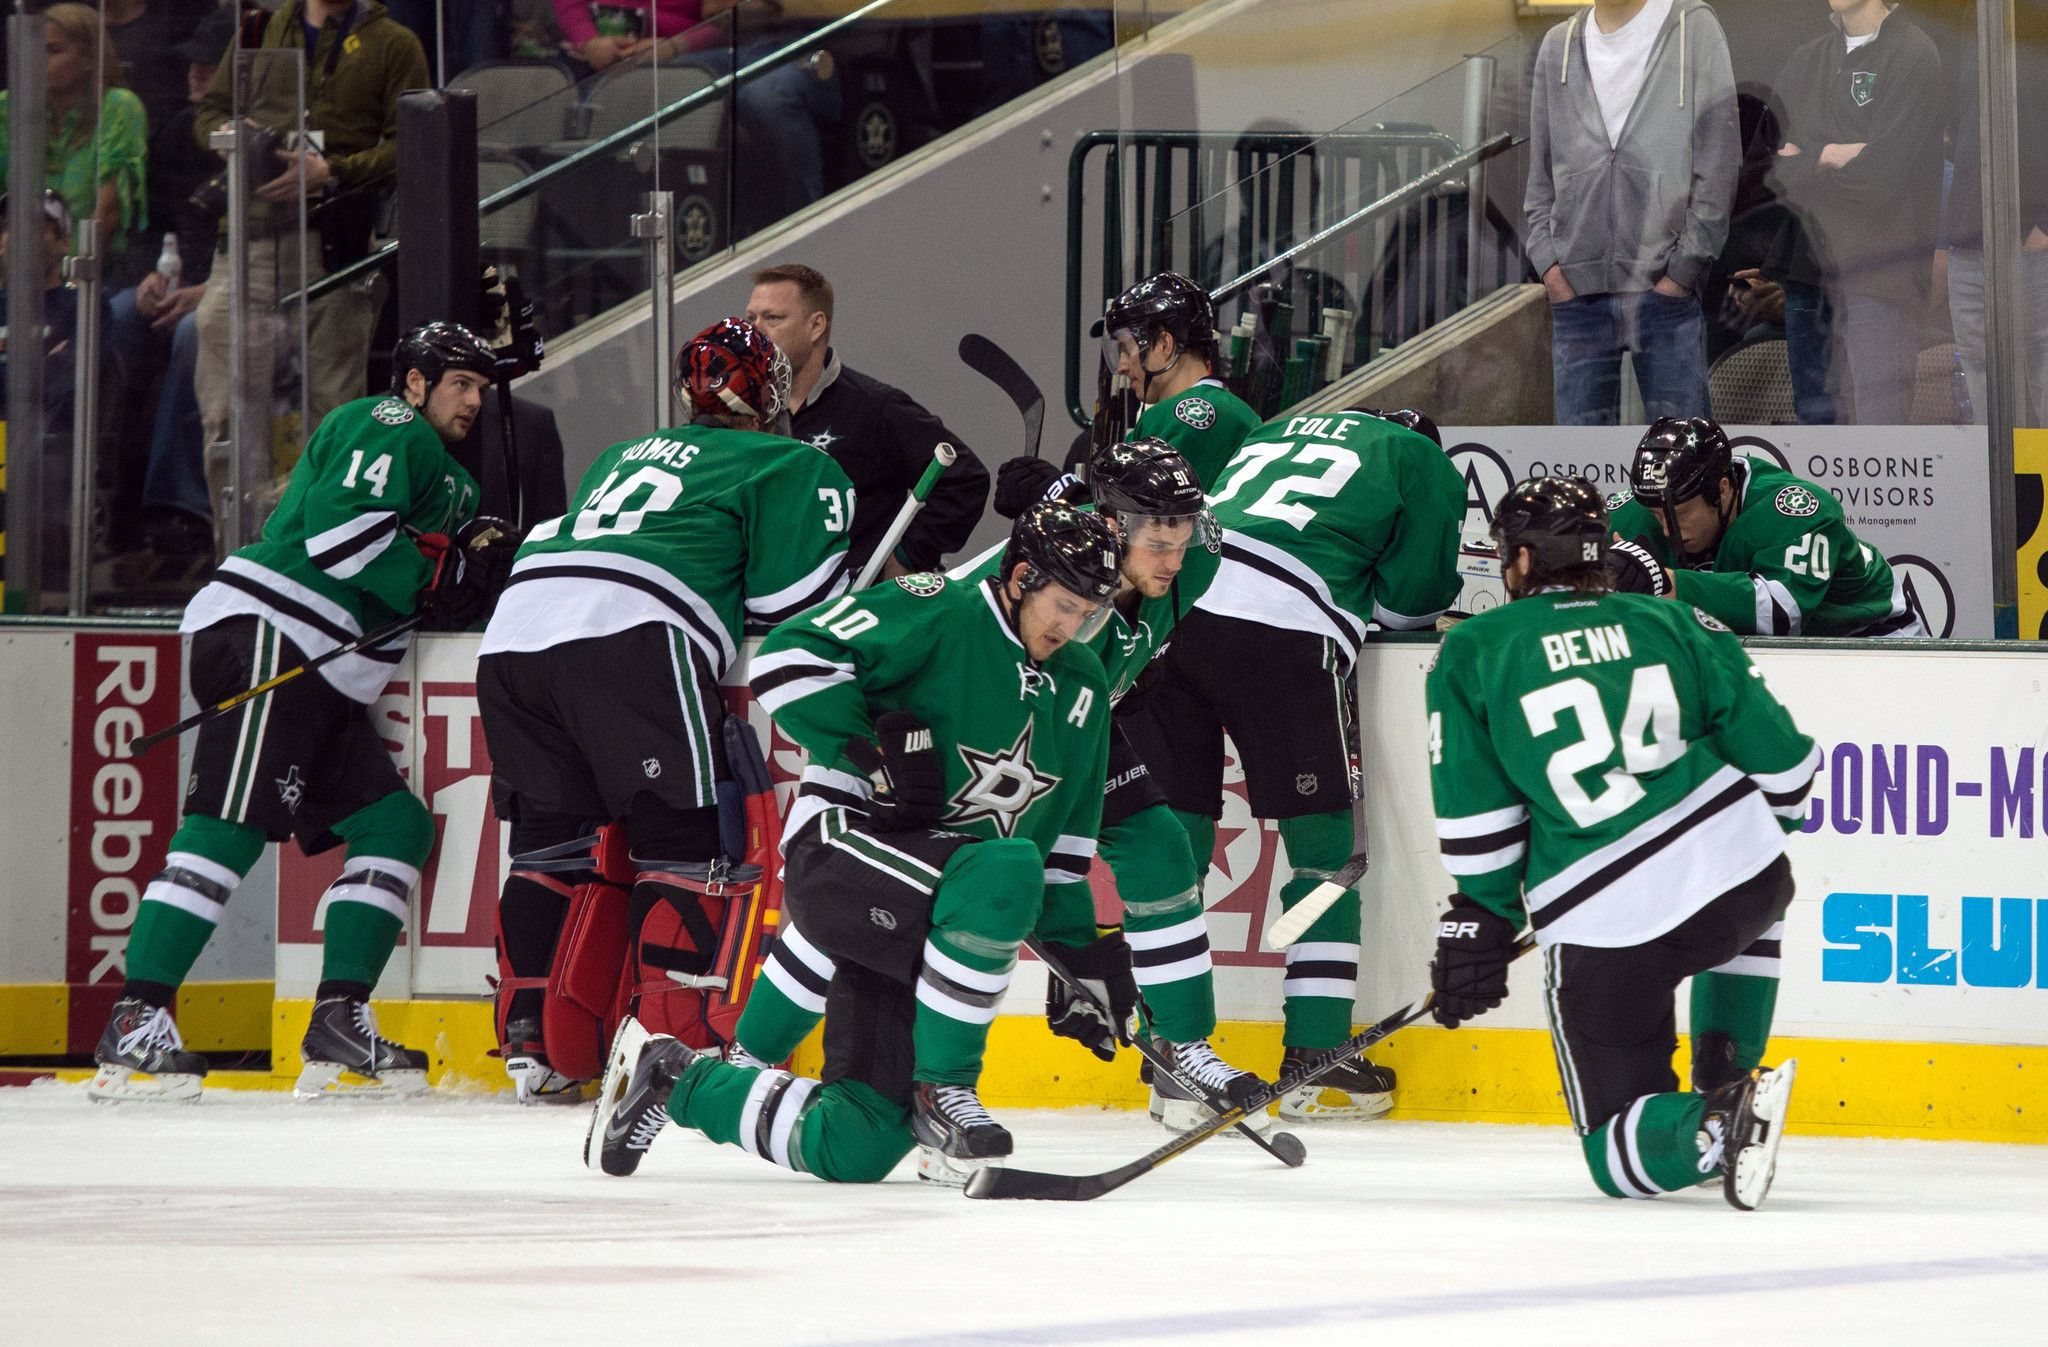 DALLAS Dallas Stars center Rich Peverley collapsed on the bench Monday during the first